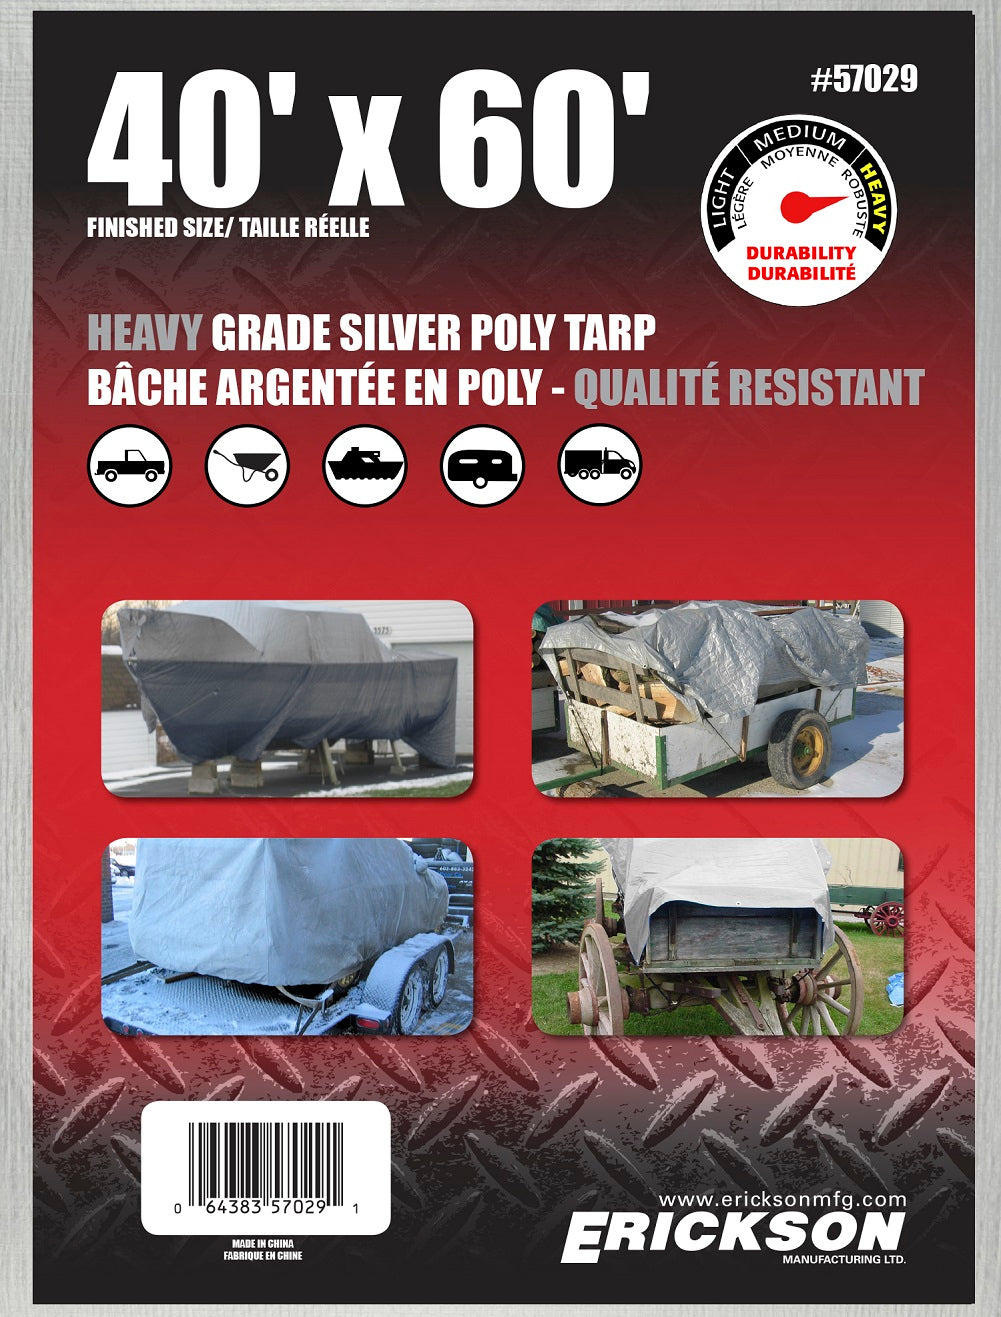 40 x 60 Heavy-Duty Poly Tarp Silver